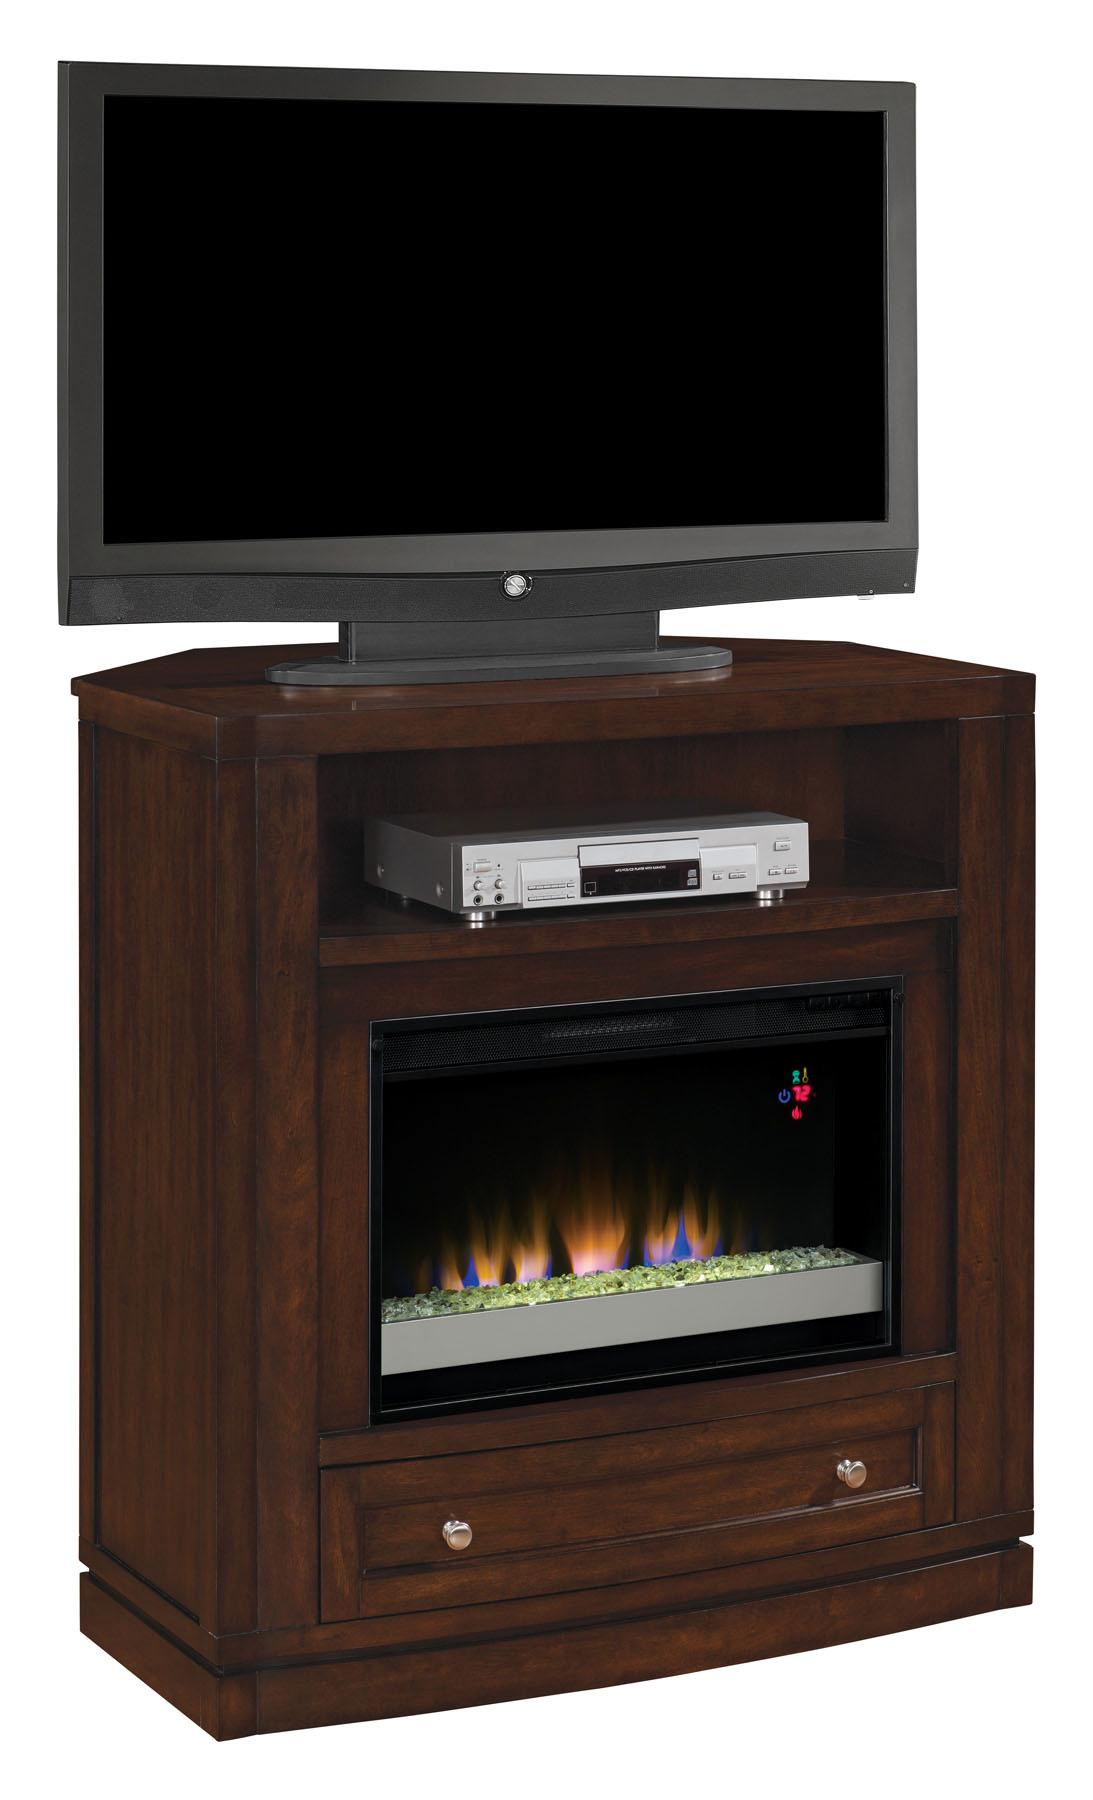 Classicflame 26de6439 C247 Wesleyan Wall Or Corner Tv Stand For Tvs Up To 47